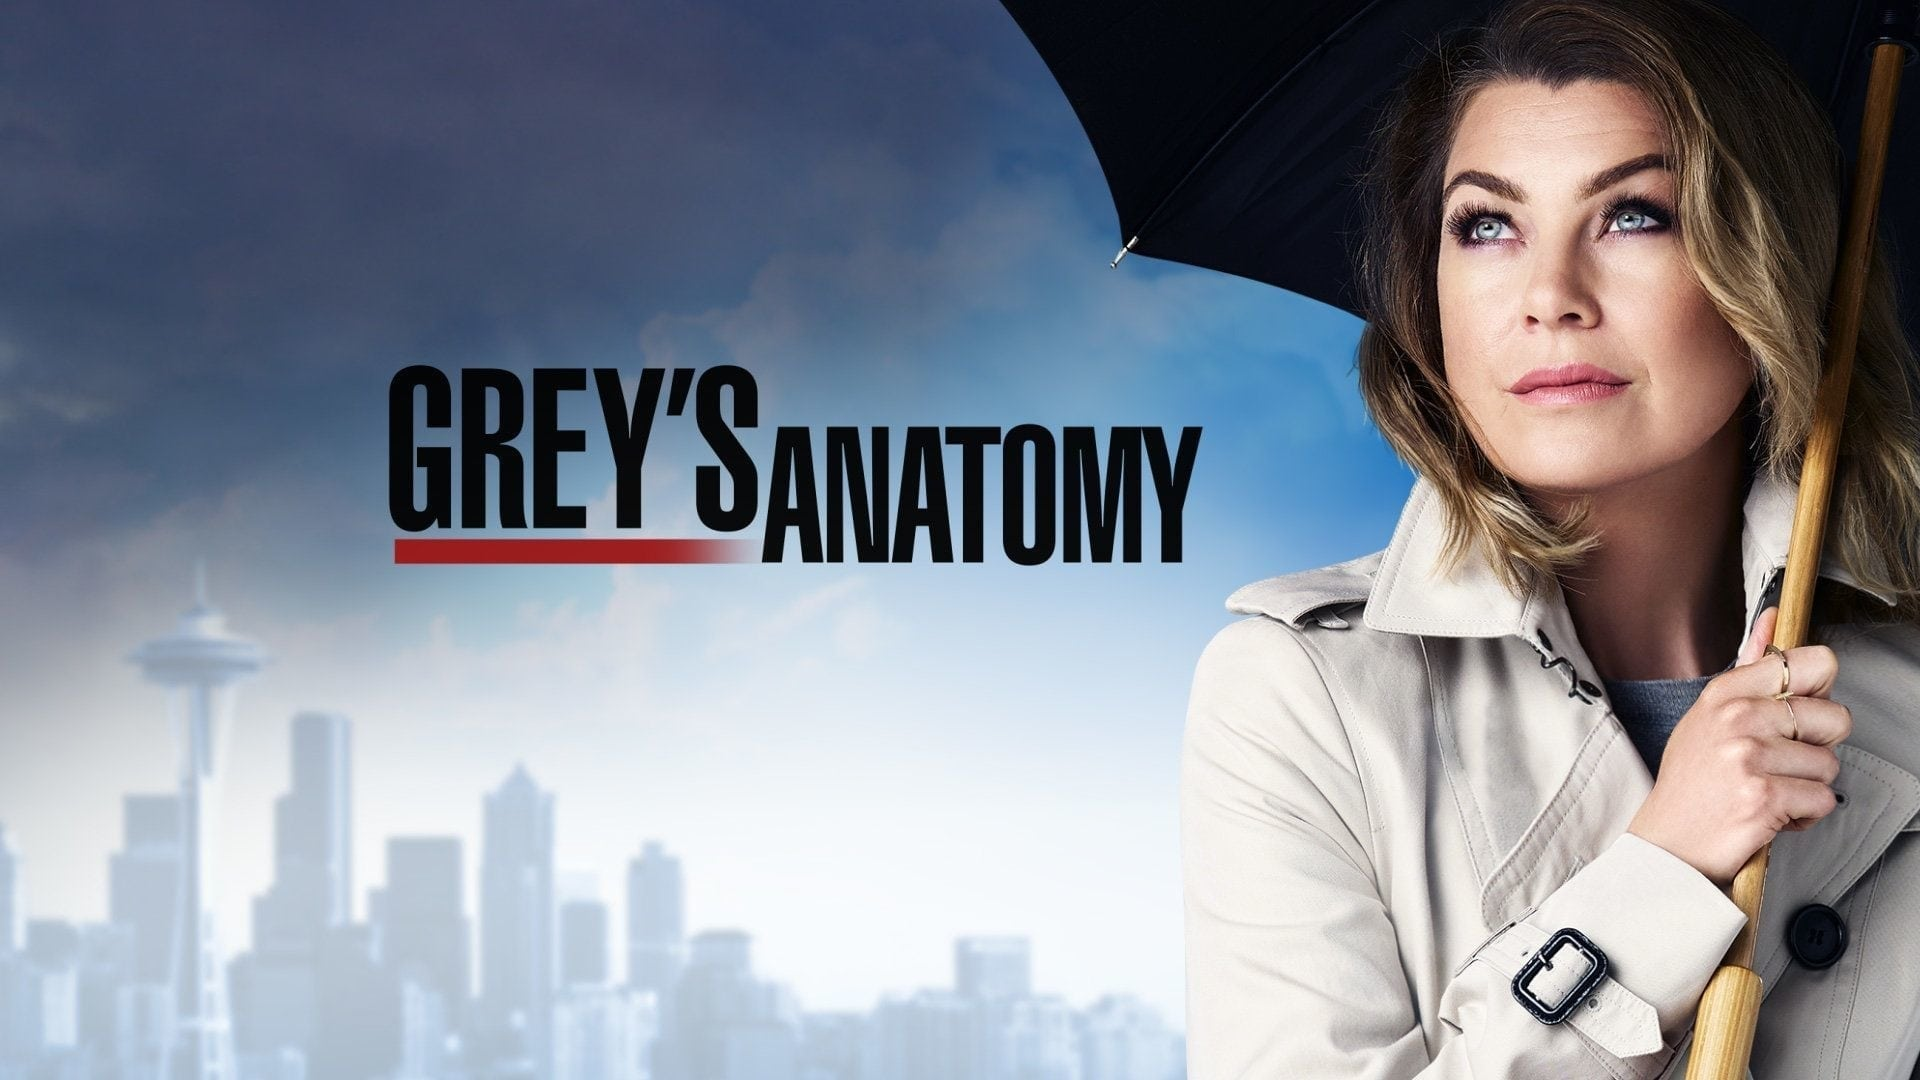 Grey's Anatomy Season 7 Episode 14 : P.Y.T. (Pretty Young Thing)